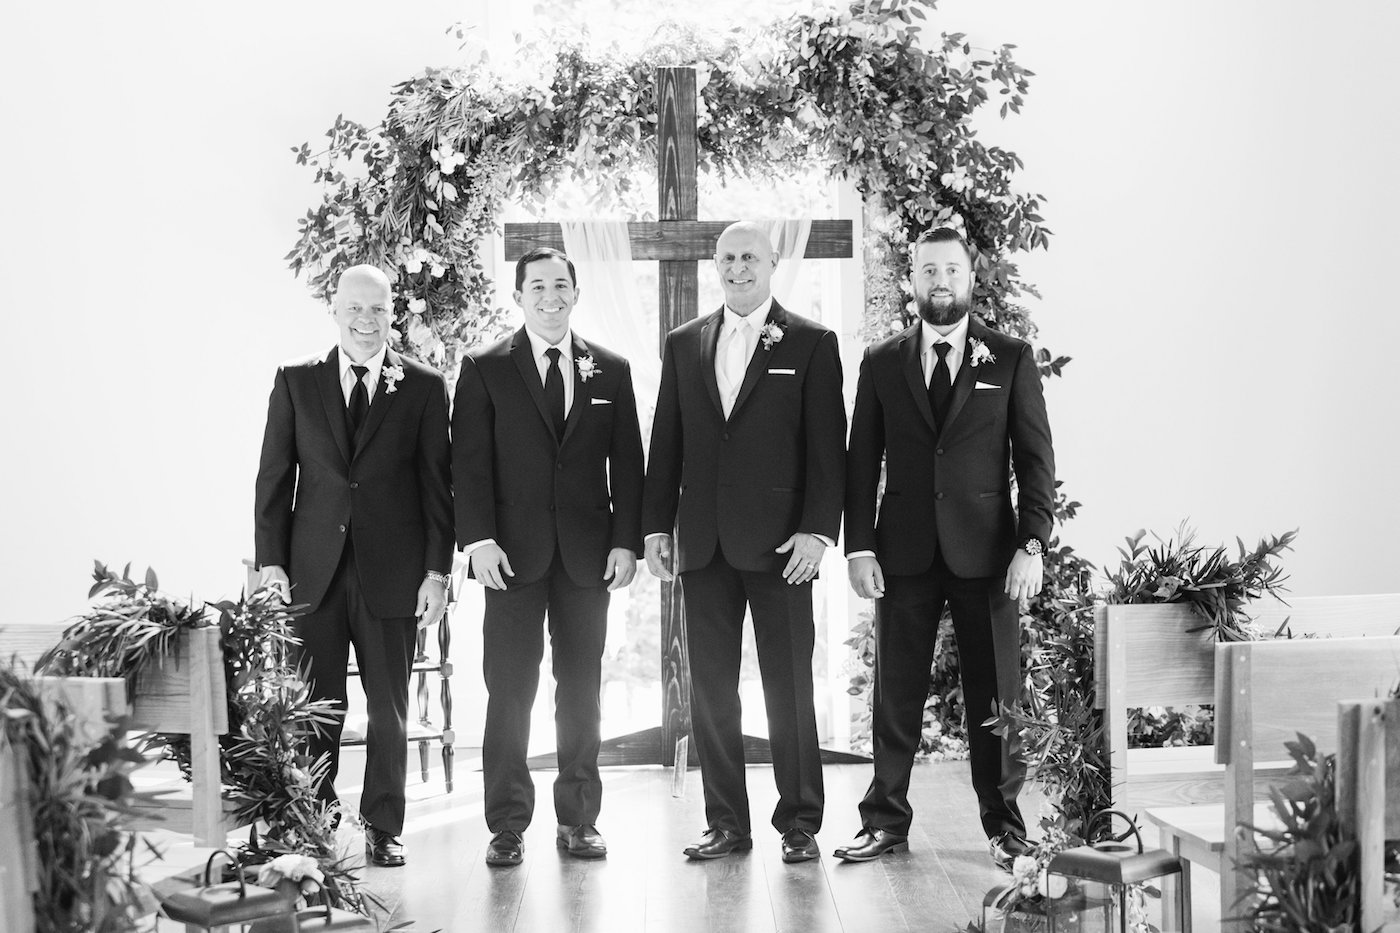 Groomsmen Standing at Alter